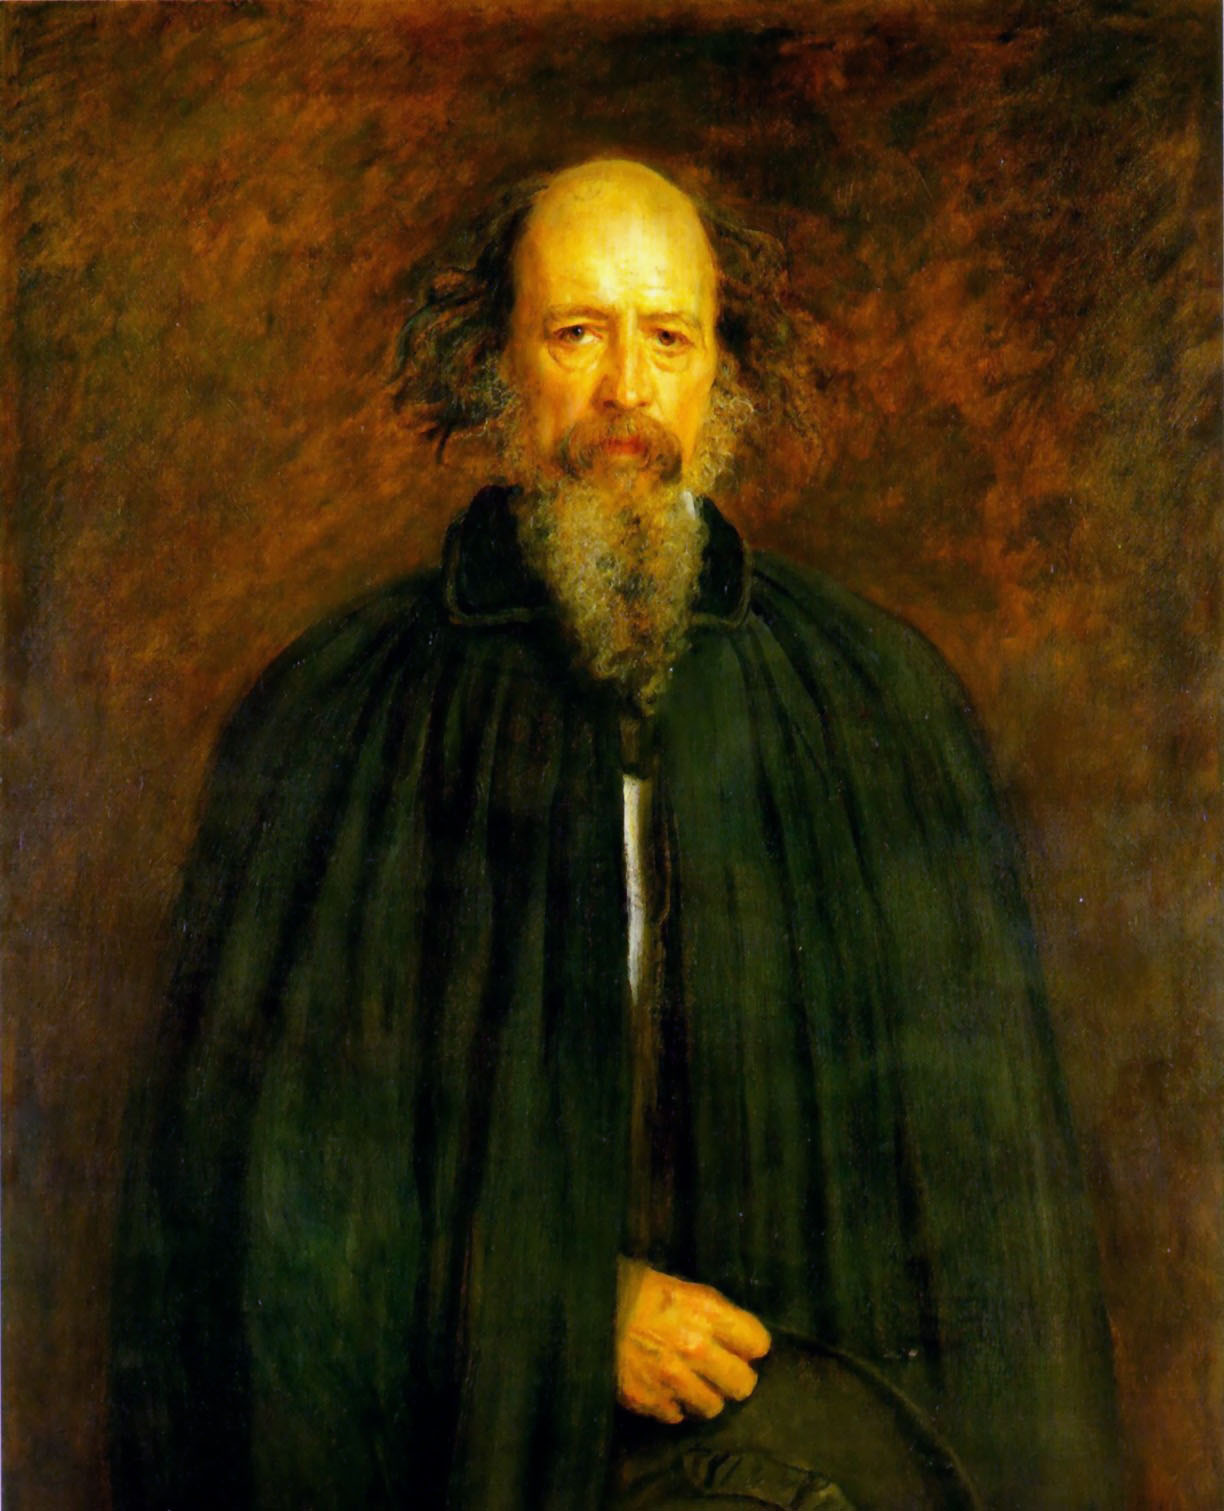 how does tennyson tell the story of godiva Tennyson's poems summary and analysis of godiva  about his townspeople's  concerns and told him that they would starve if they had  harvard's daniel  donoghue provides helpful history and background for the poem.